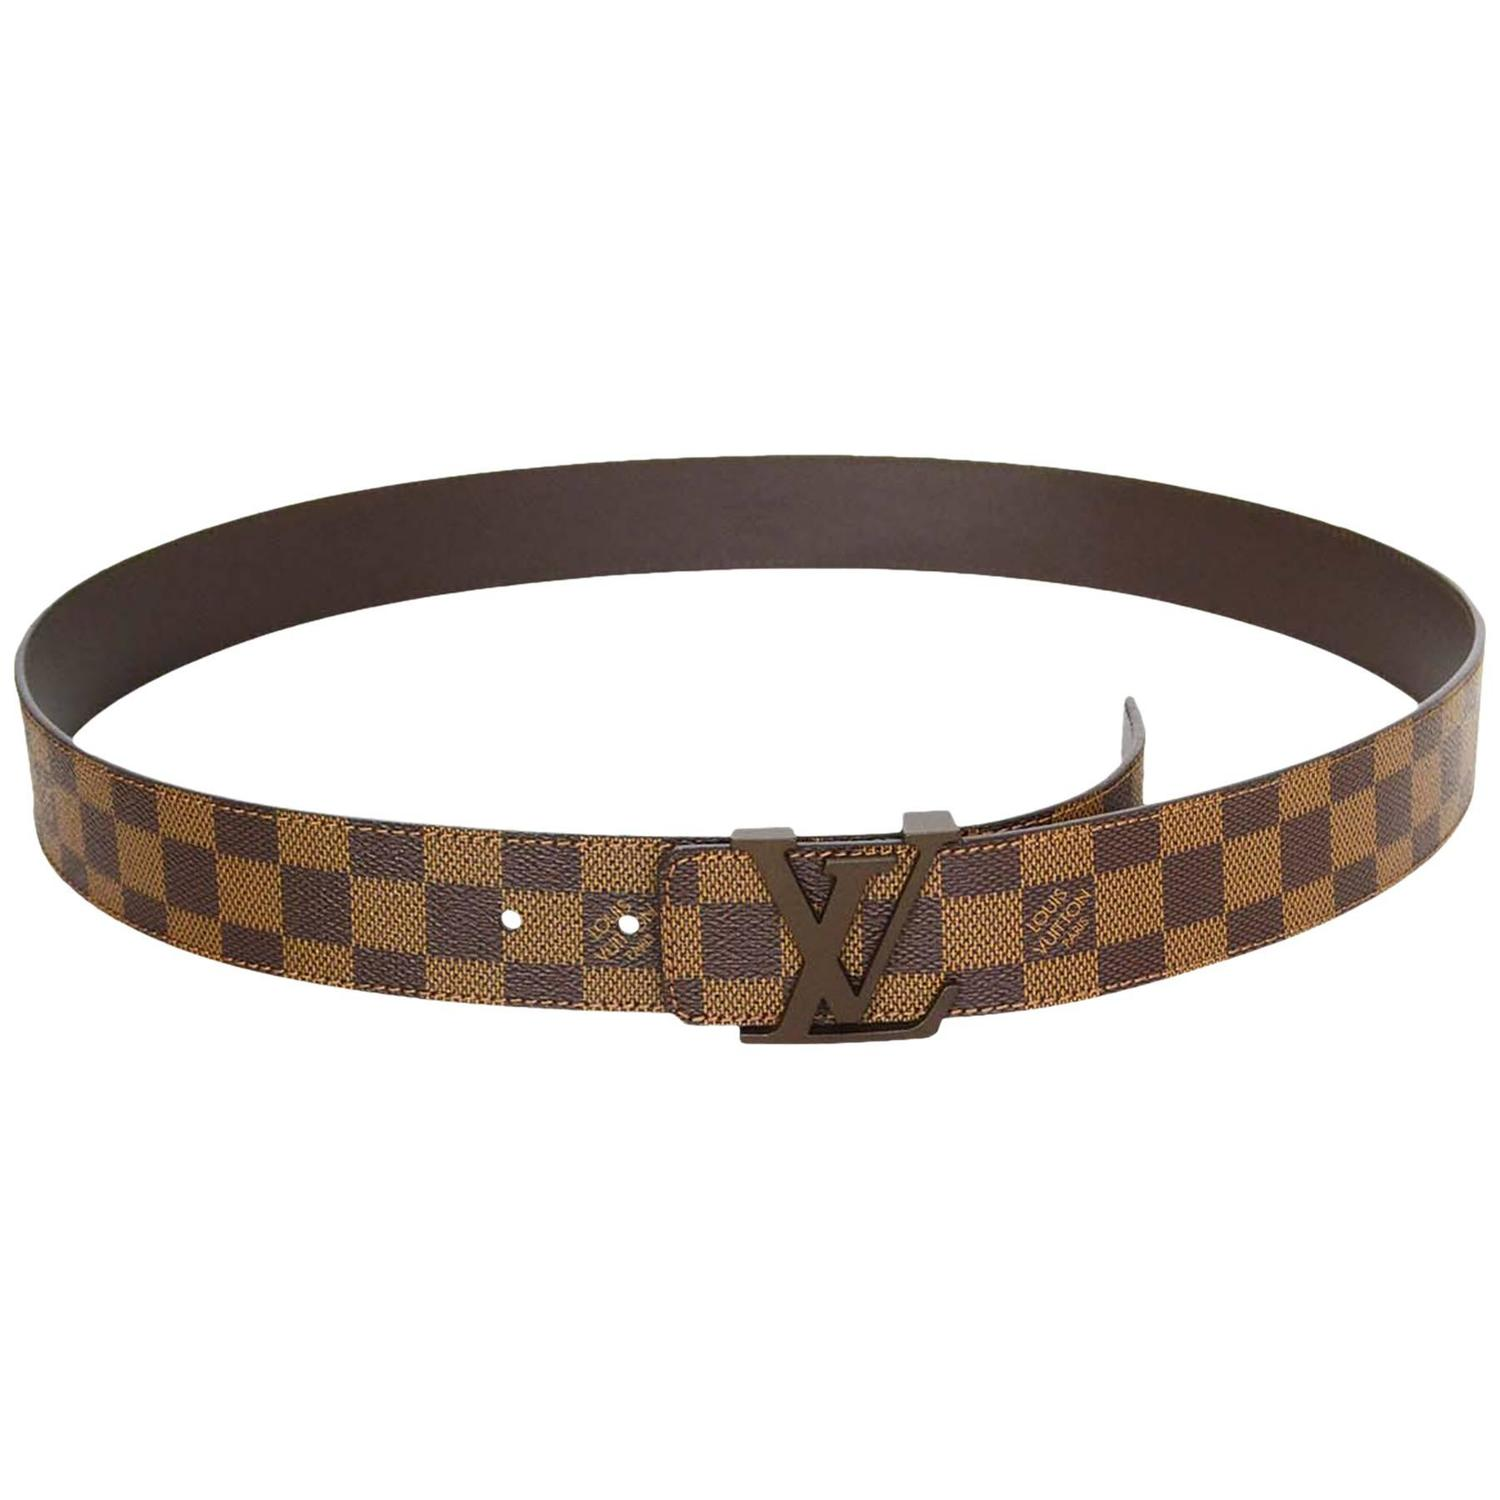 louis vuitton initiales damier belt with lv buckle sz 110 at 1stdibs